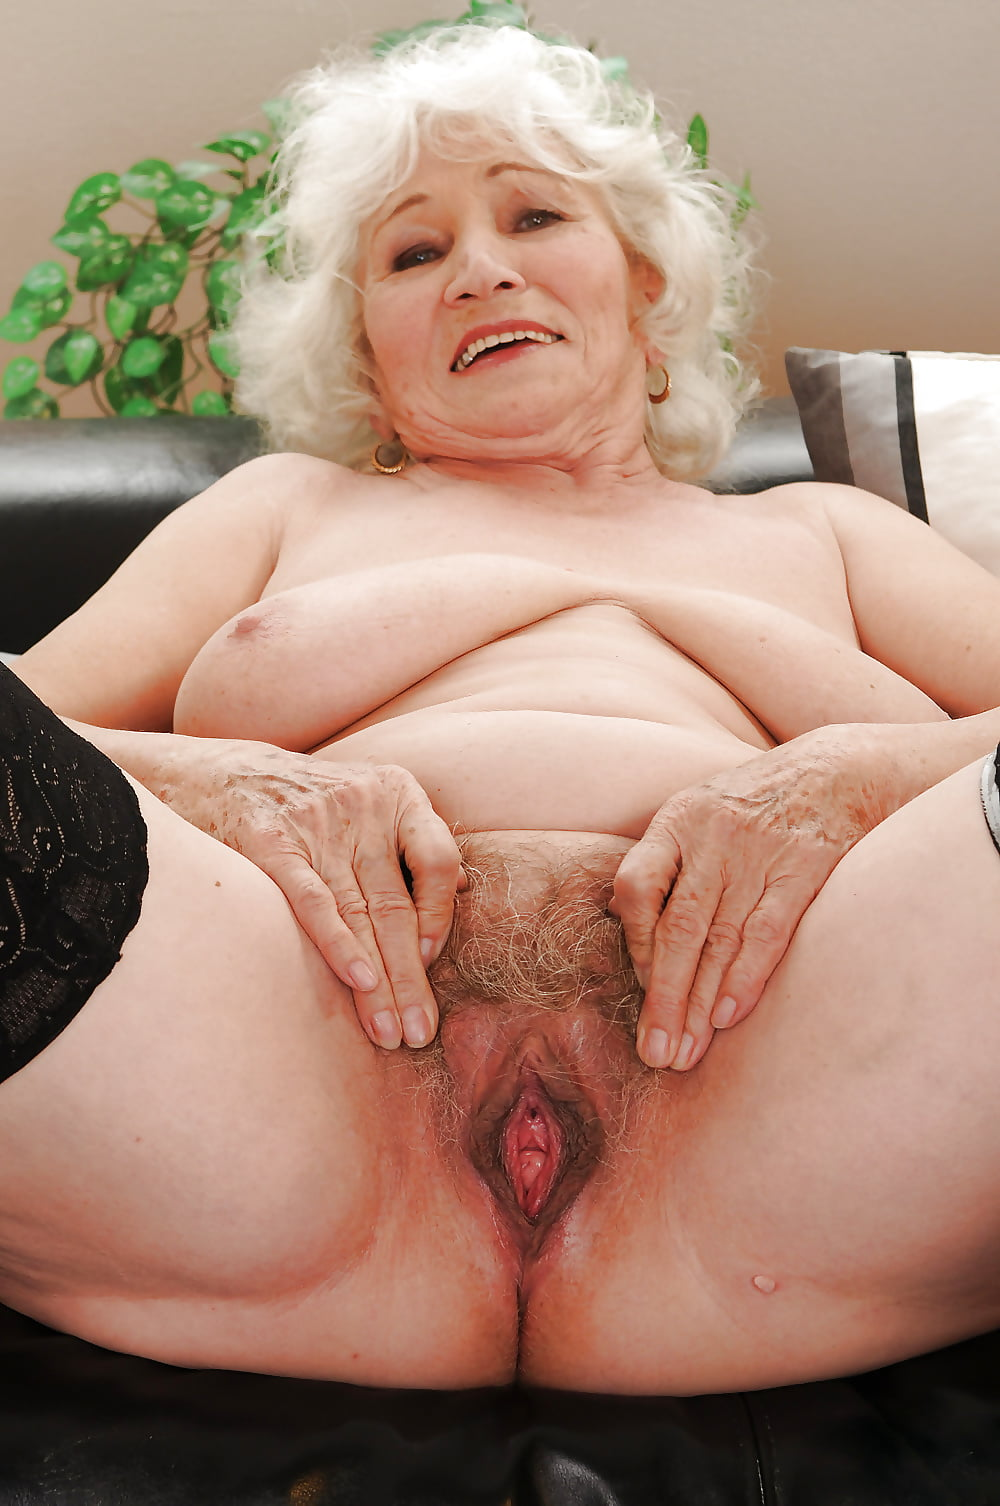 rate-my-granny-pussy-a-pussy-girl